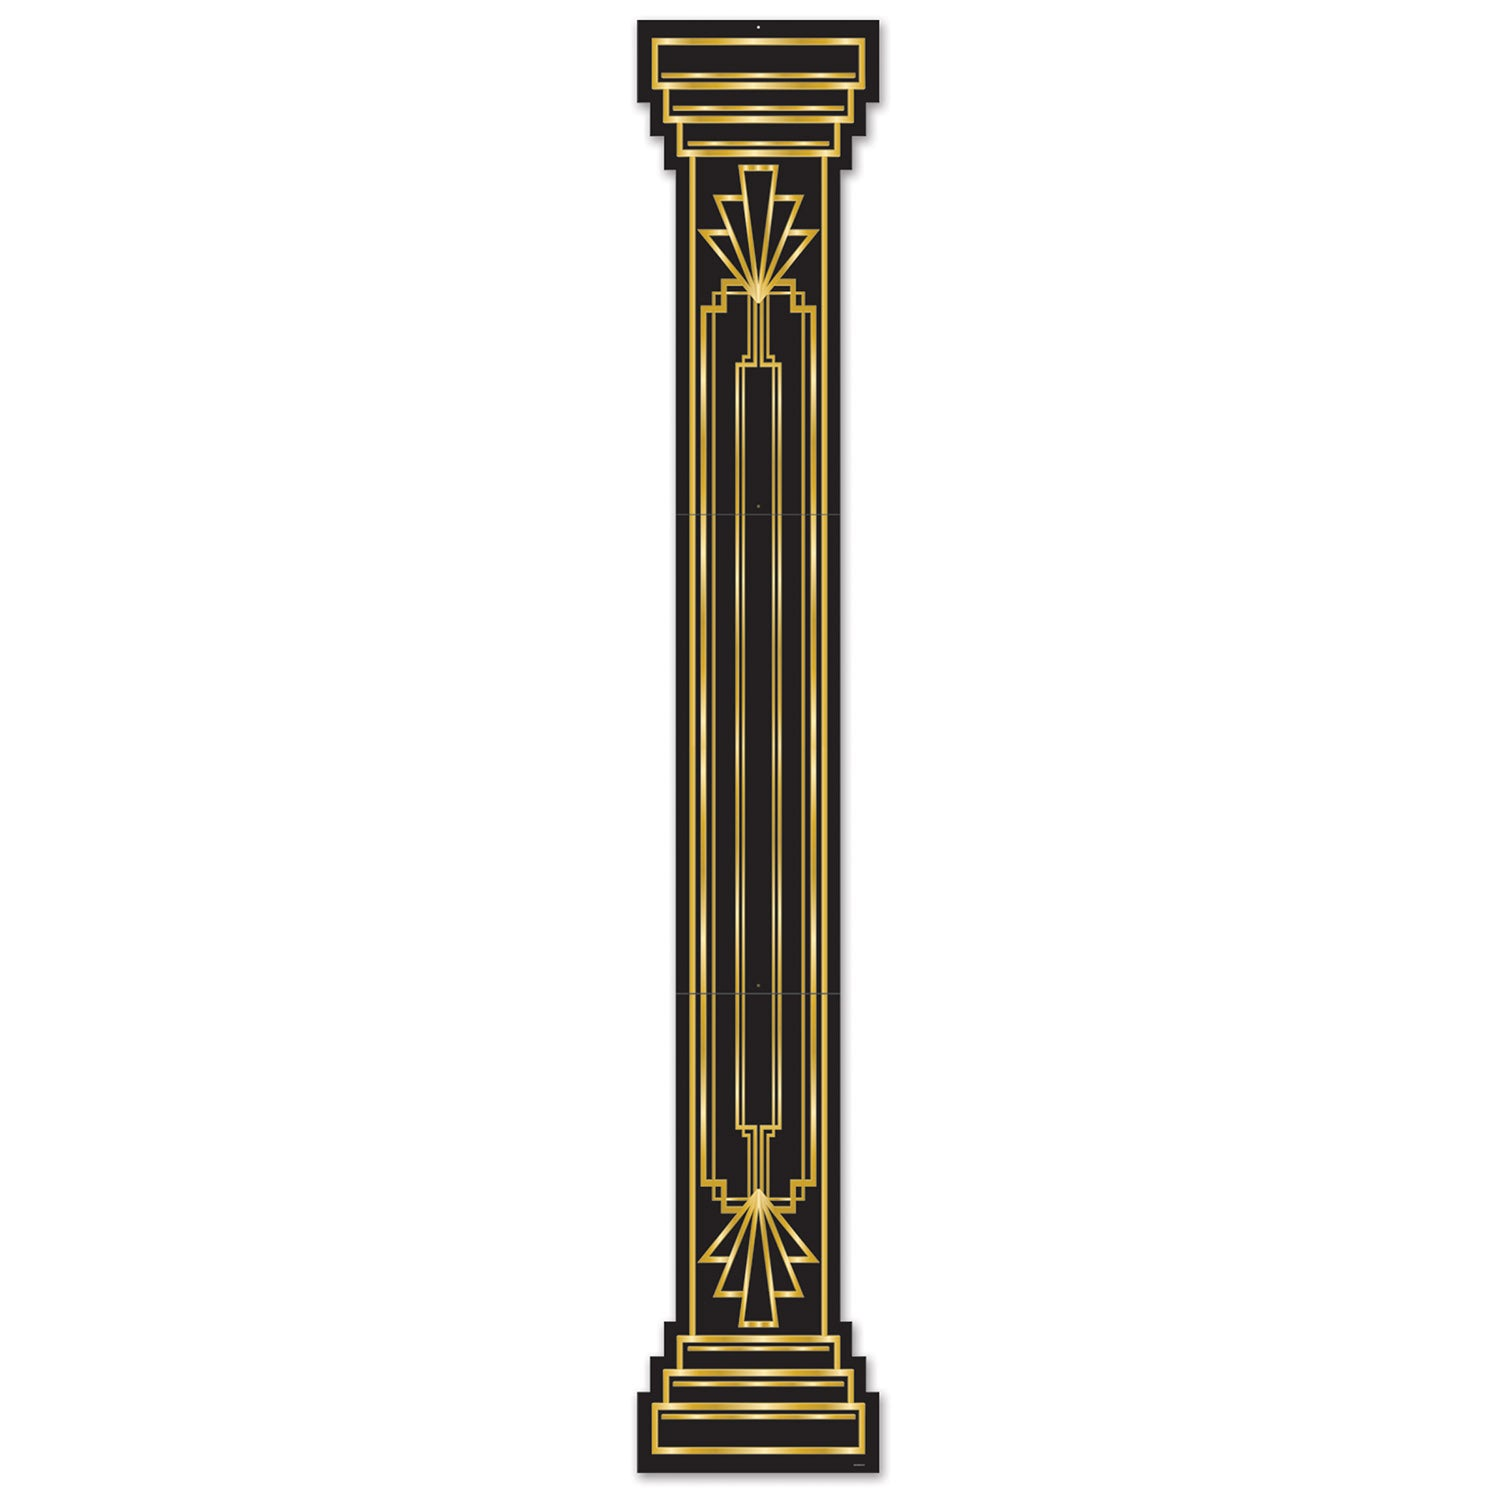 Jtd Great 20's Column Pull-Down Cutout by Beistle - 20's Theme Decorations